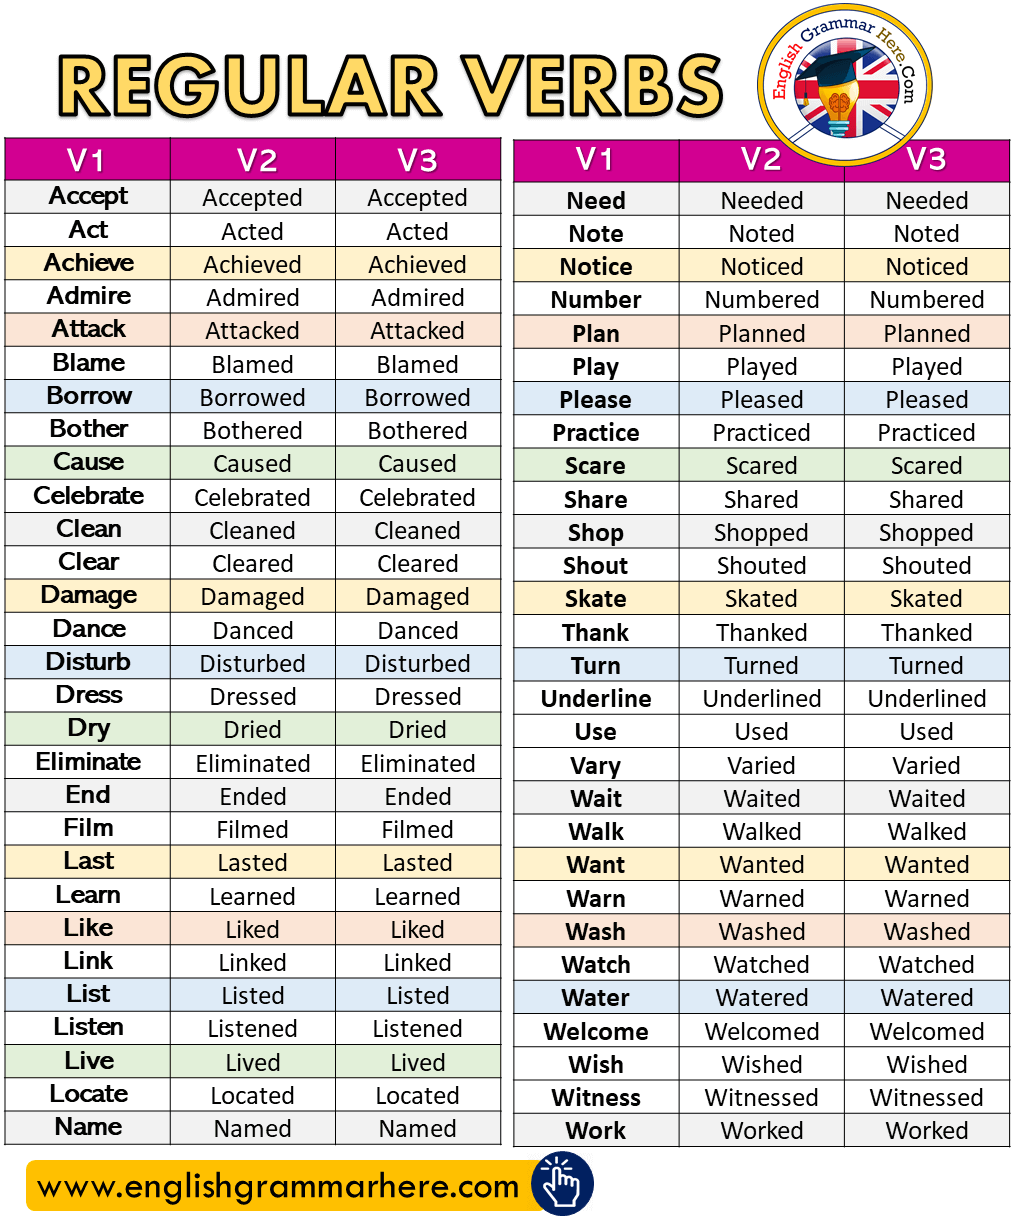 Detailed Regular Verbs List in English with V1, V2, V3, Present, Past, Past Participle